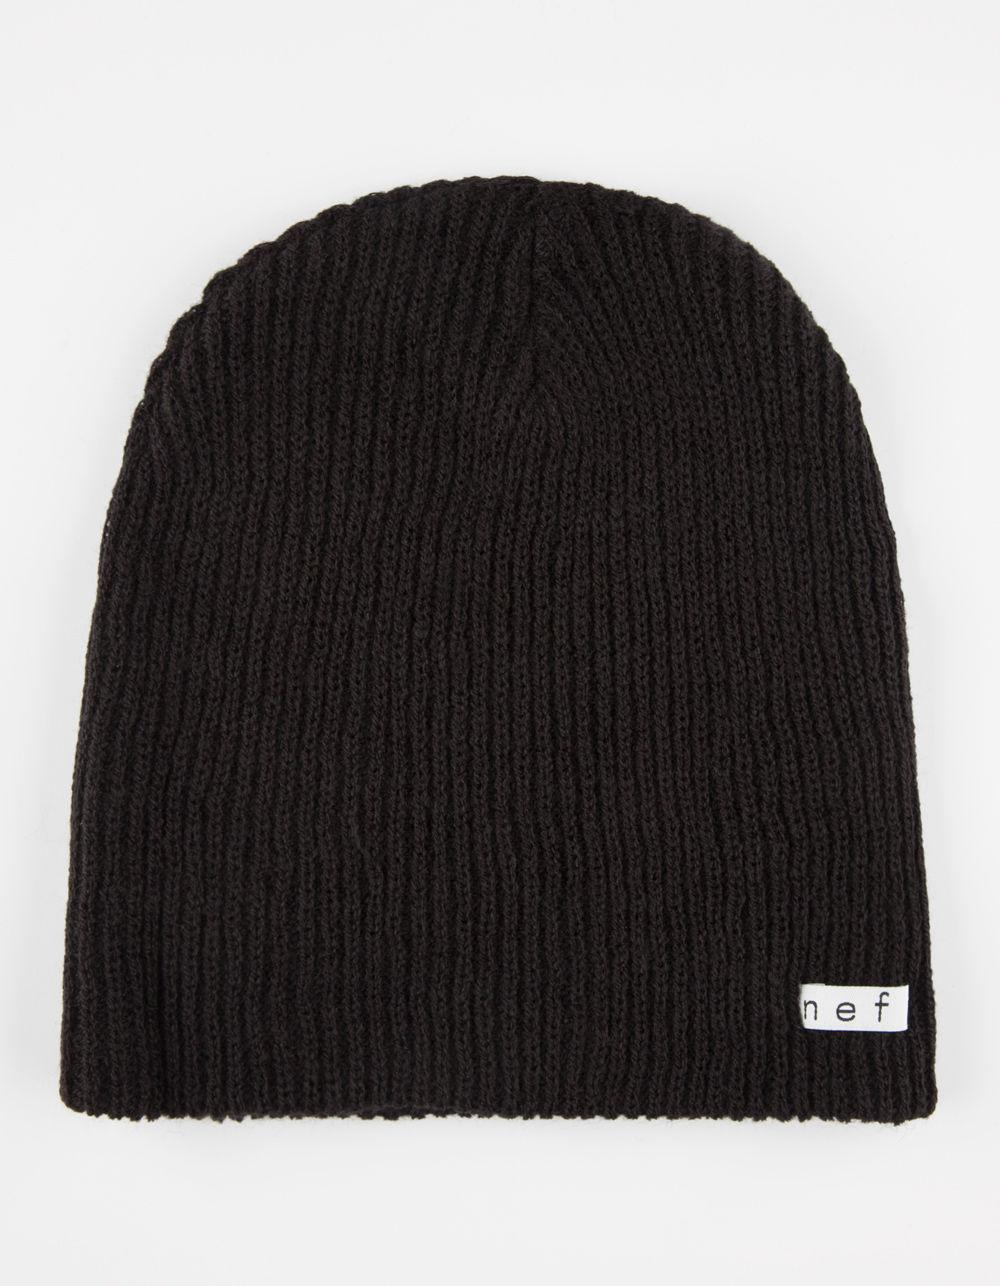 7384d4ef1b823 Lyst - Neff Daily Beanie in Black for Men - Save 31%